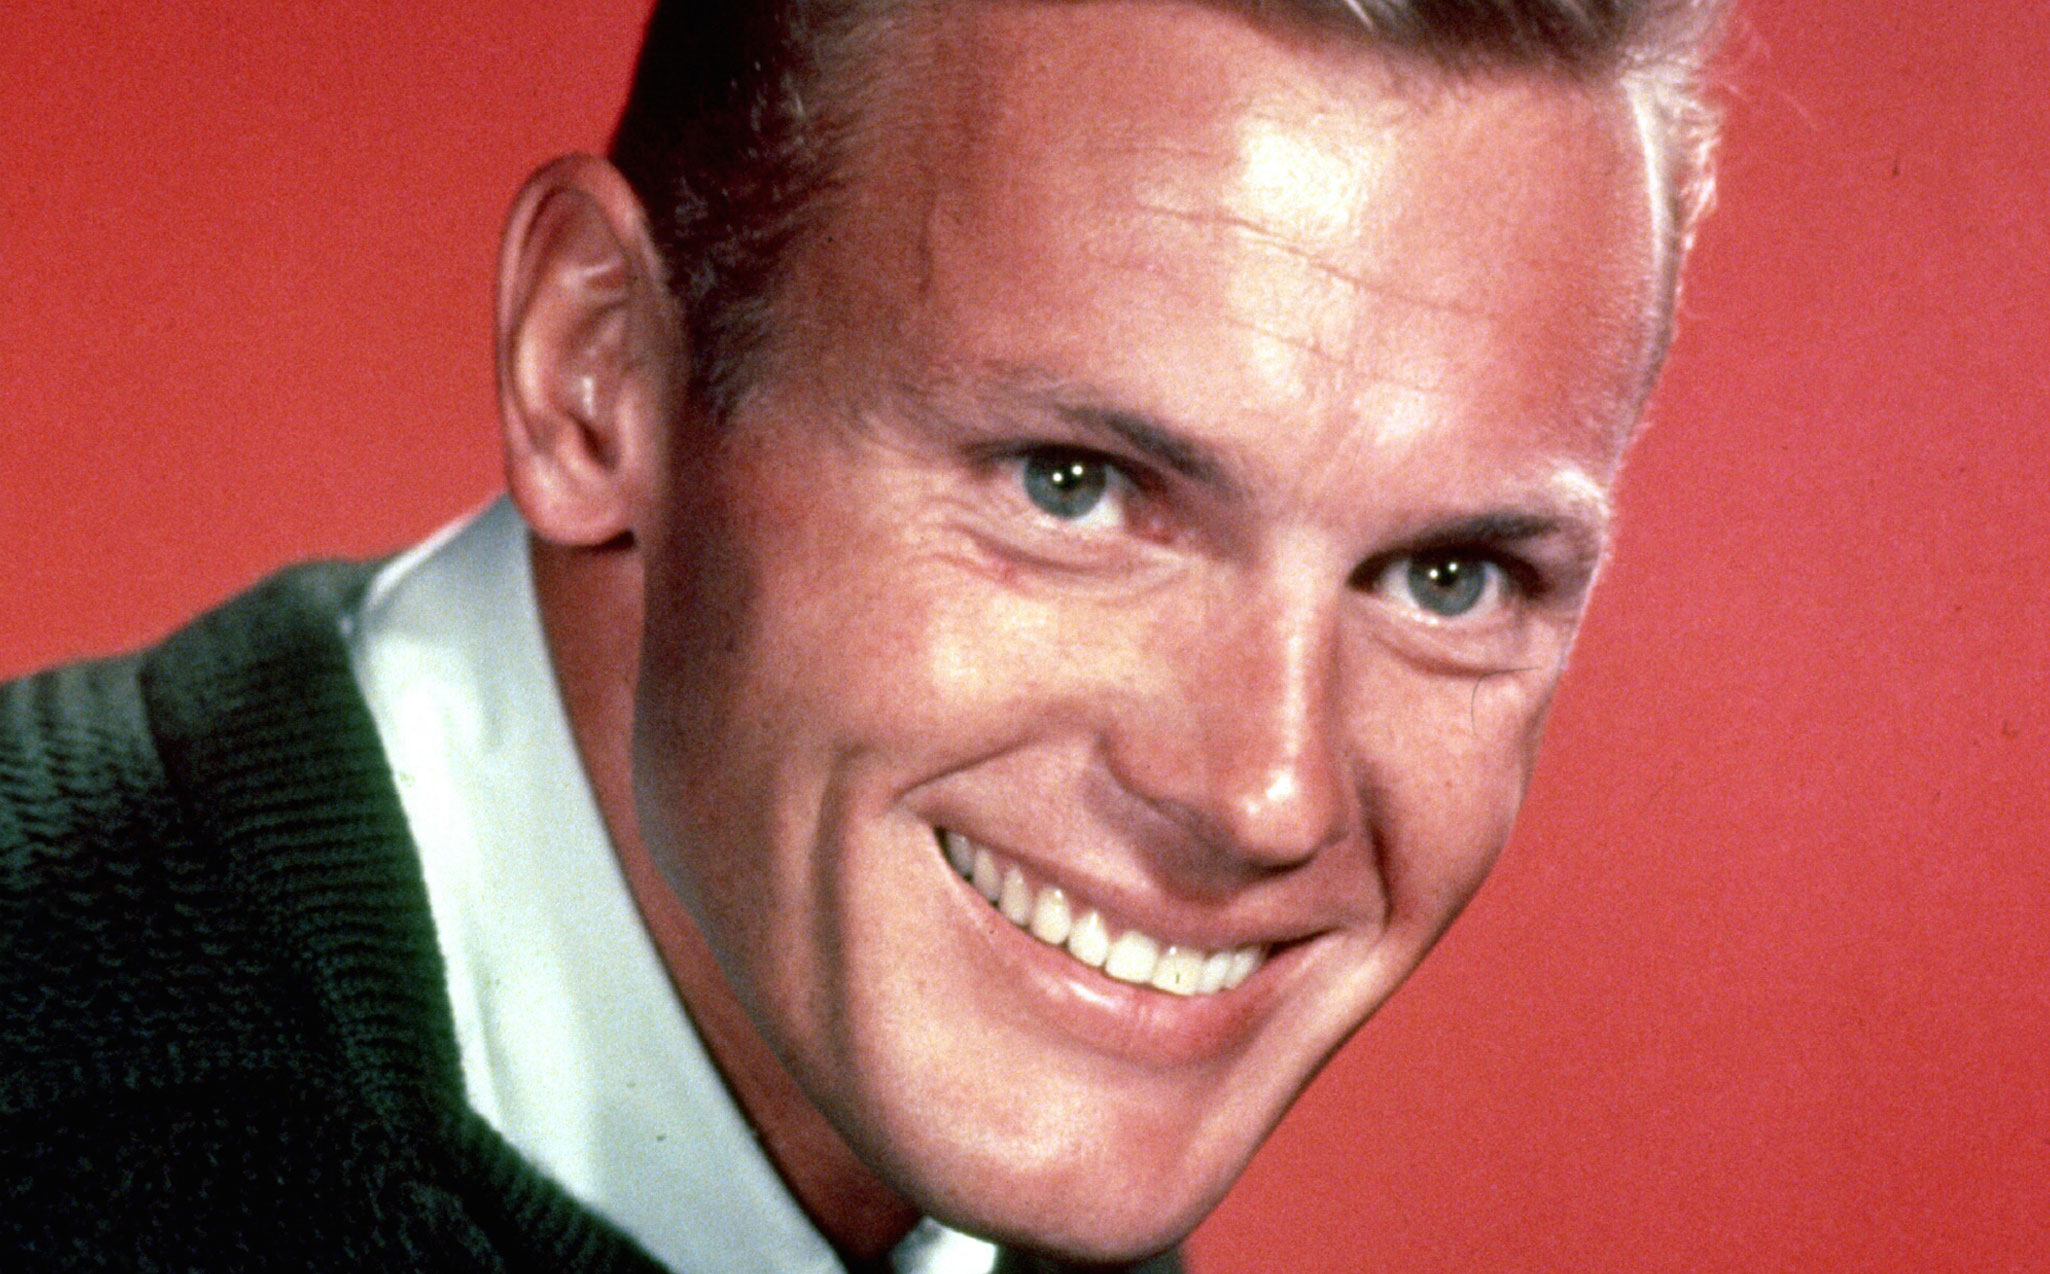 TAB HUNTER CONFIDENTIAL with TAB HUNTER in person